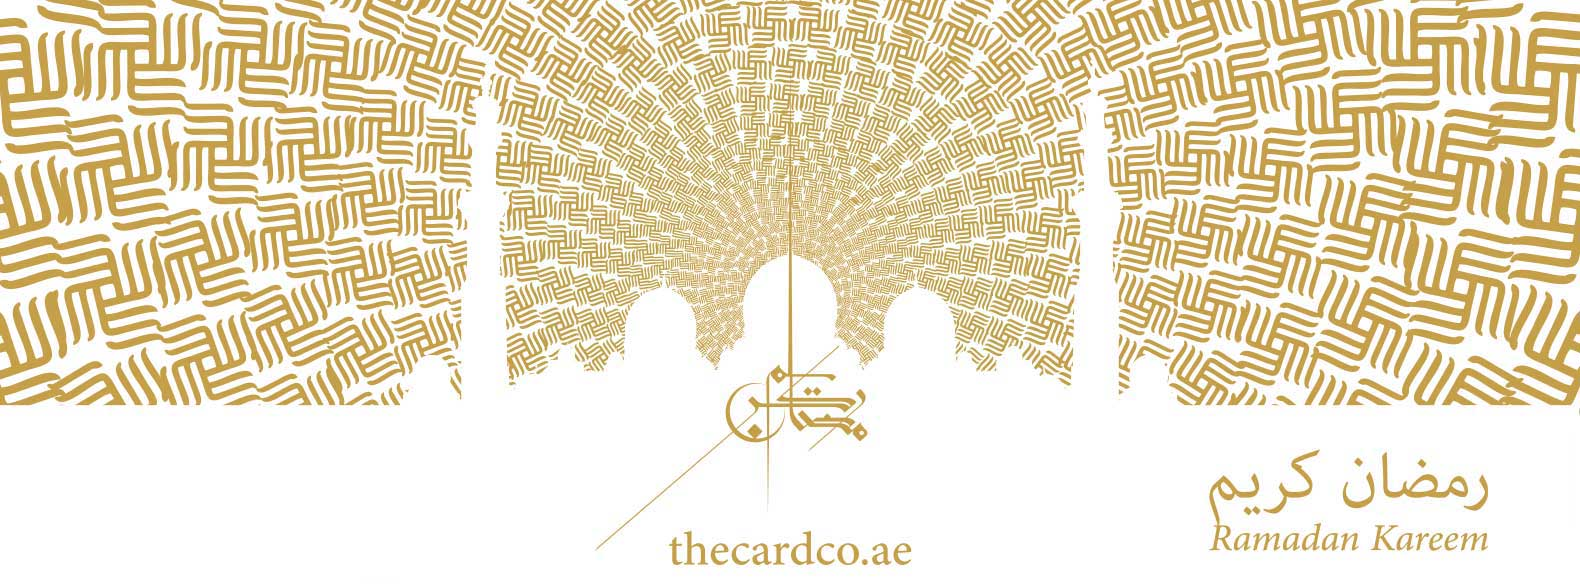 Ramadan Kareem from The Card Co.